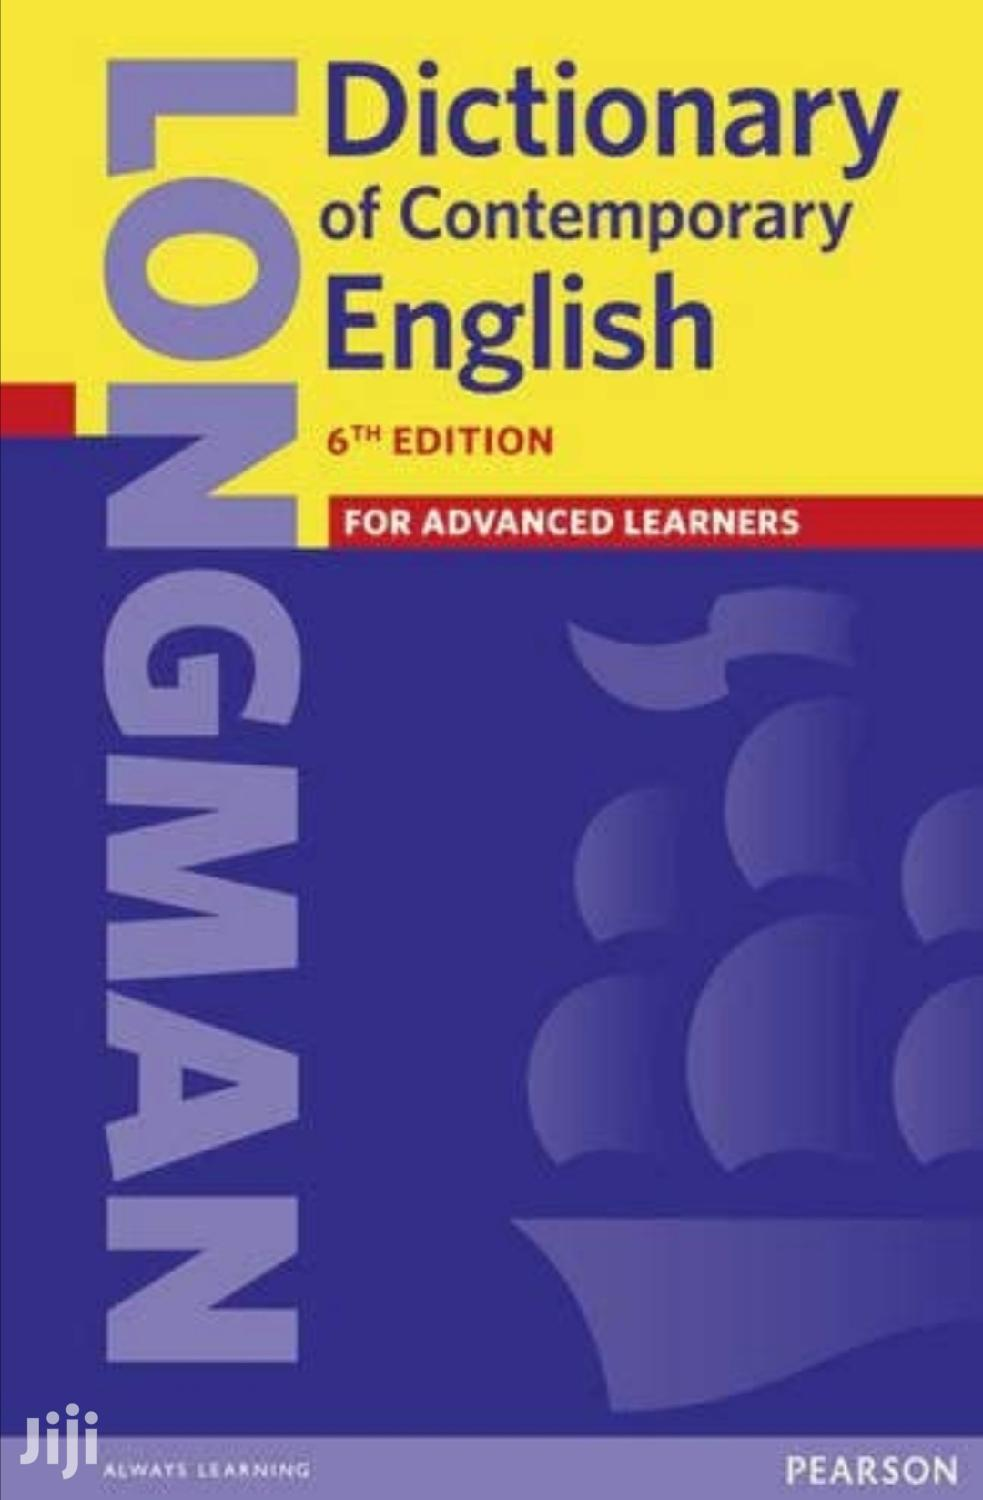 Longman Dictionary of Contemporary English 6th Edition | Books & Games for sale in Kampala, Central Region, Uganda